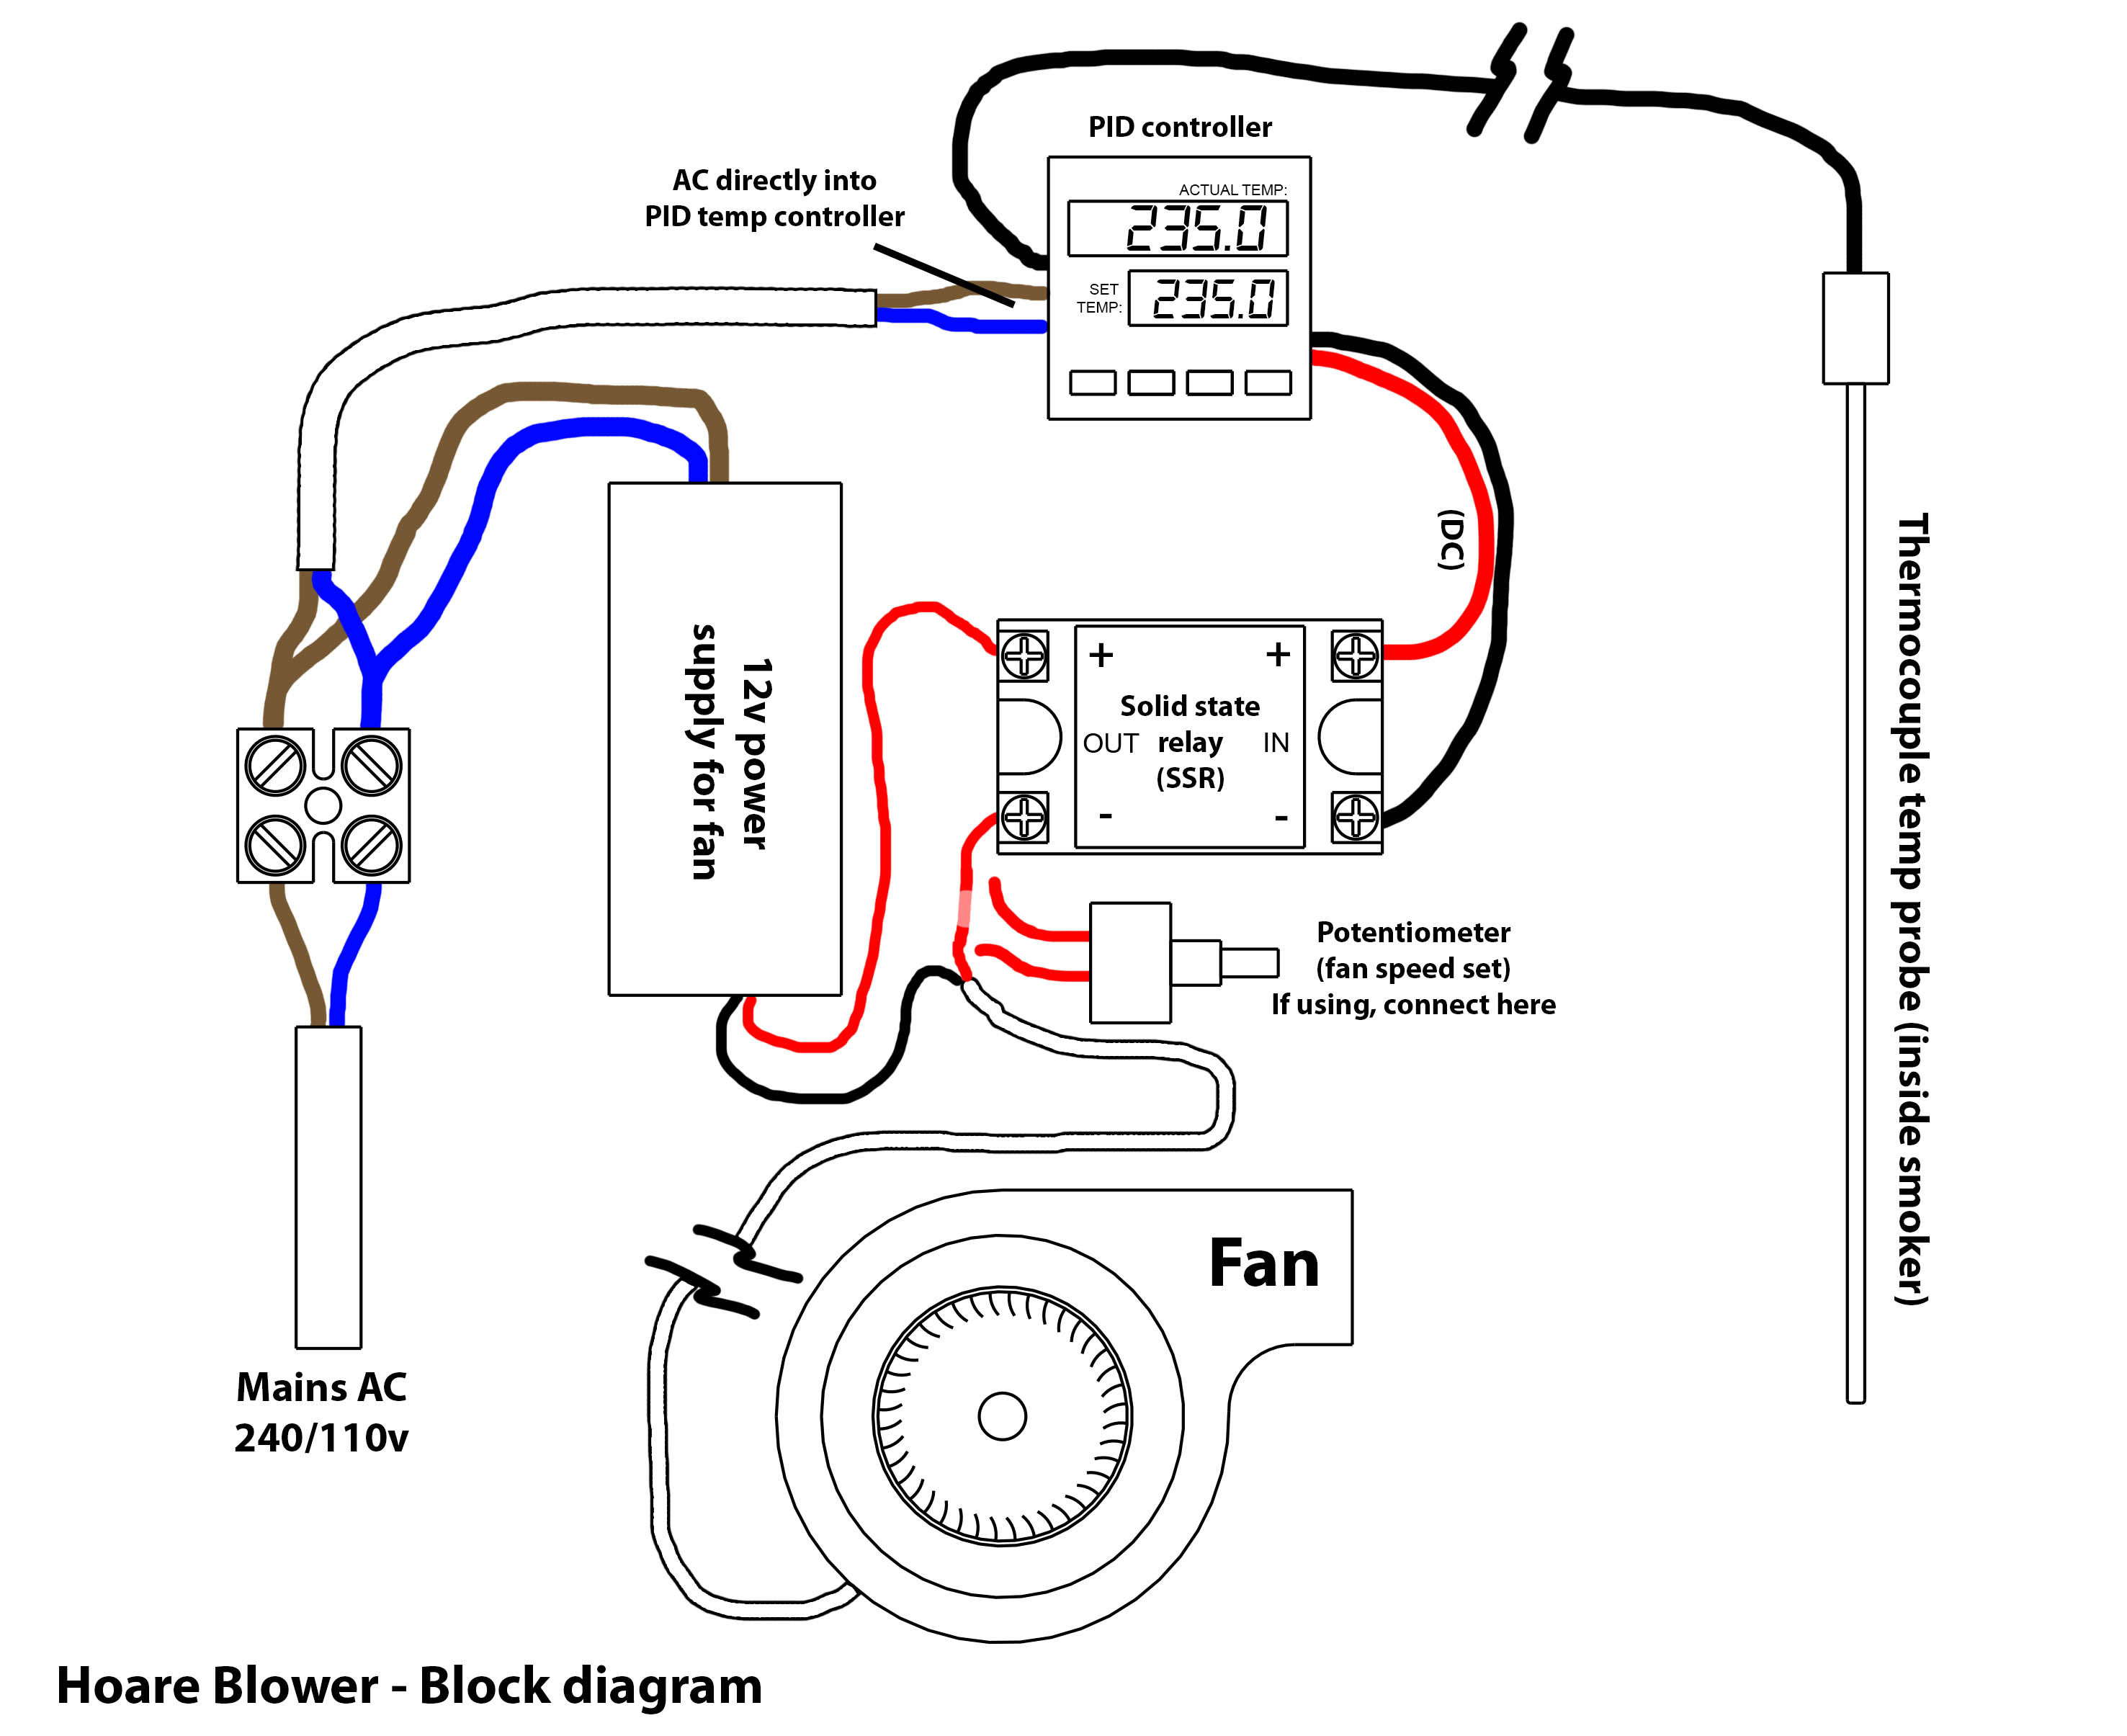 On Off Rotary Switch Wiring Diagram Not Lossing Lamp Build Your Own Digital Forced Draft Smoker Controller Uk 4 Position 8821902